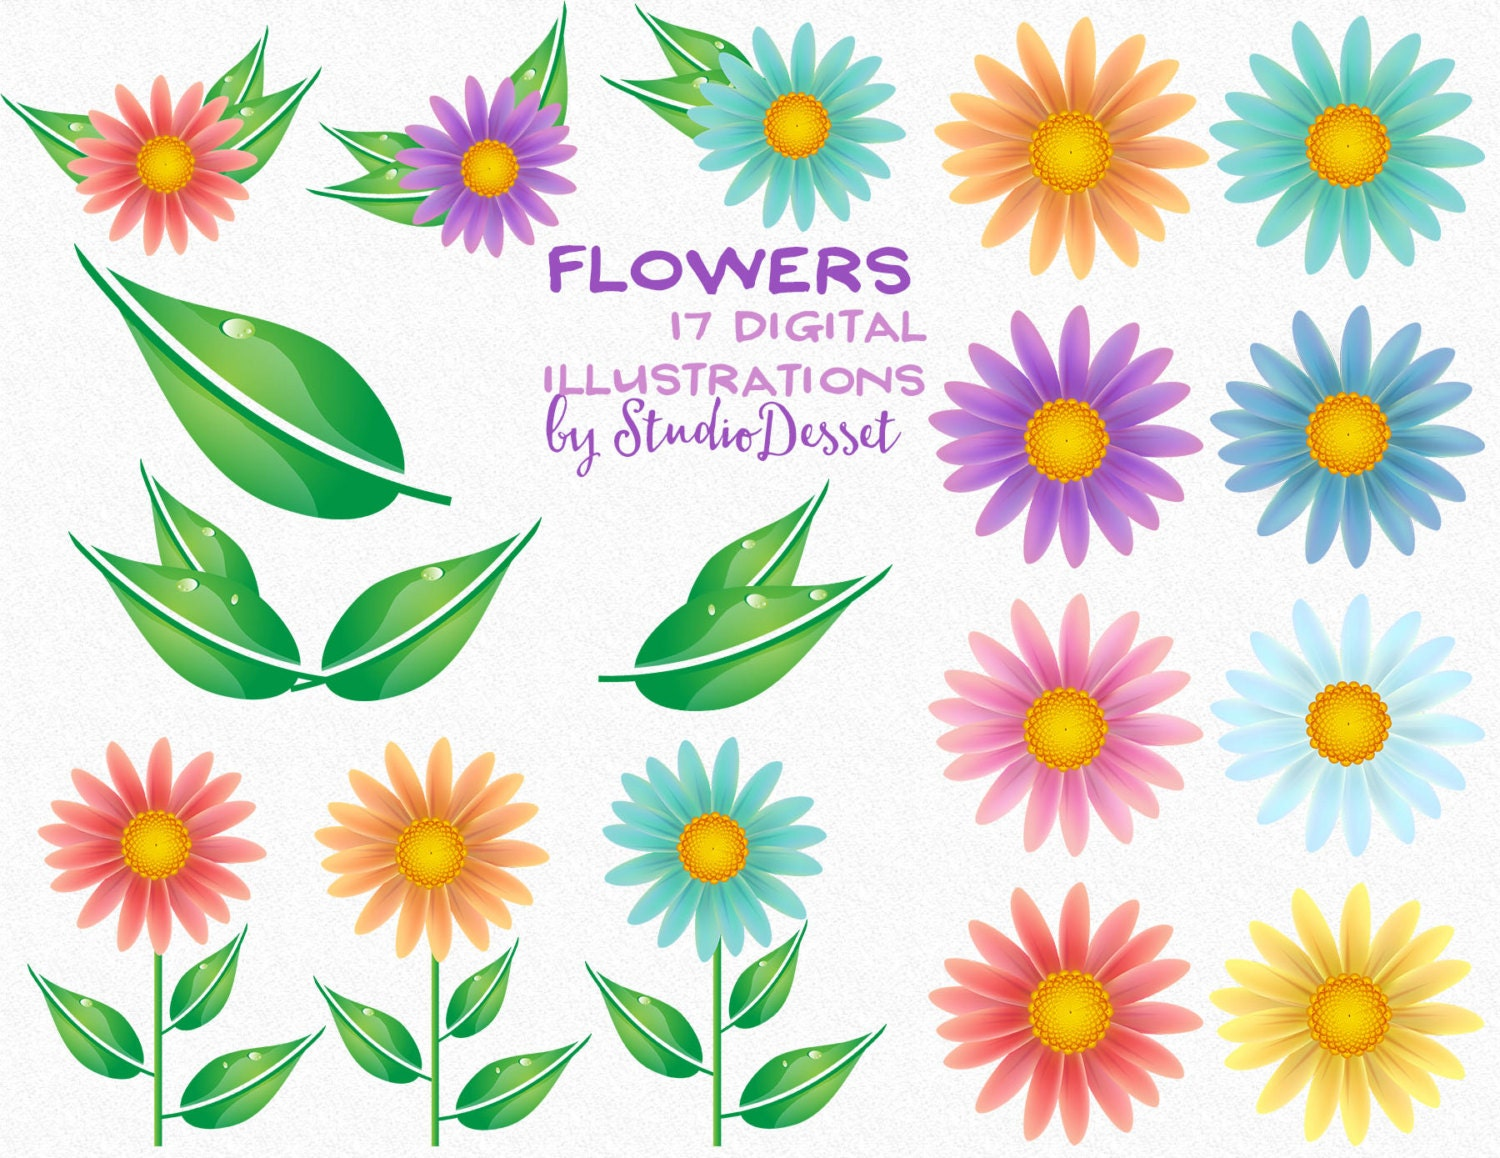 Flower cliparts daisy flower floral clip art daisy clipart this is a digital file izmirmasajfo Gallery